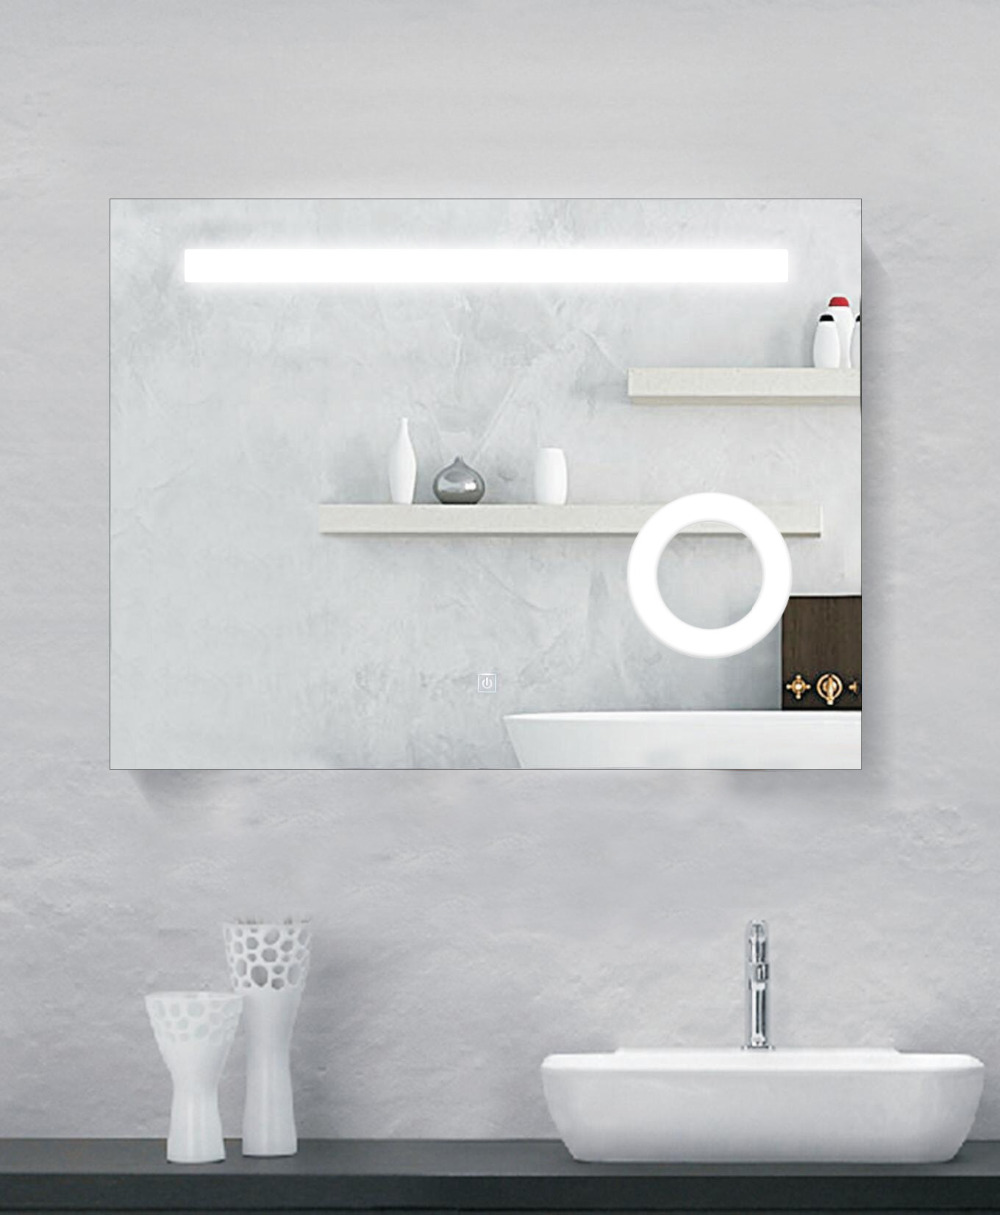 DIYHD Wall Mount Led Lighted Bathroom Mirror Vanity Defogger Square ...